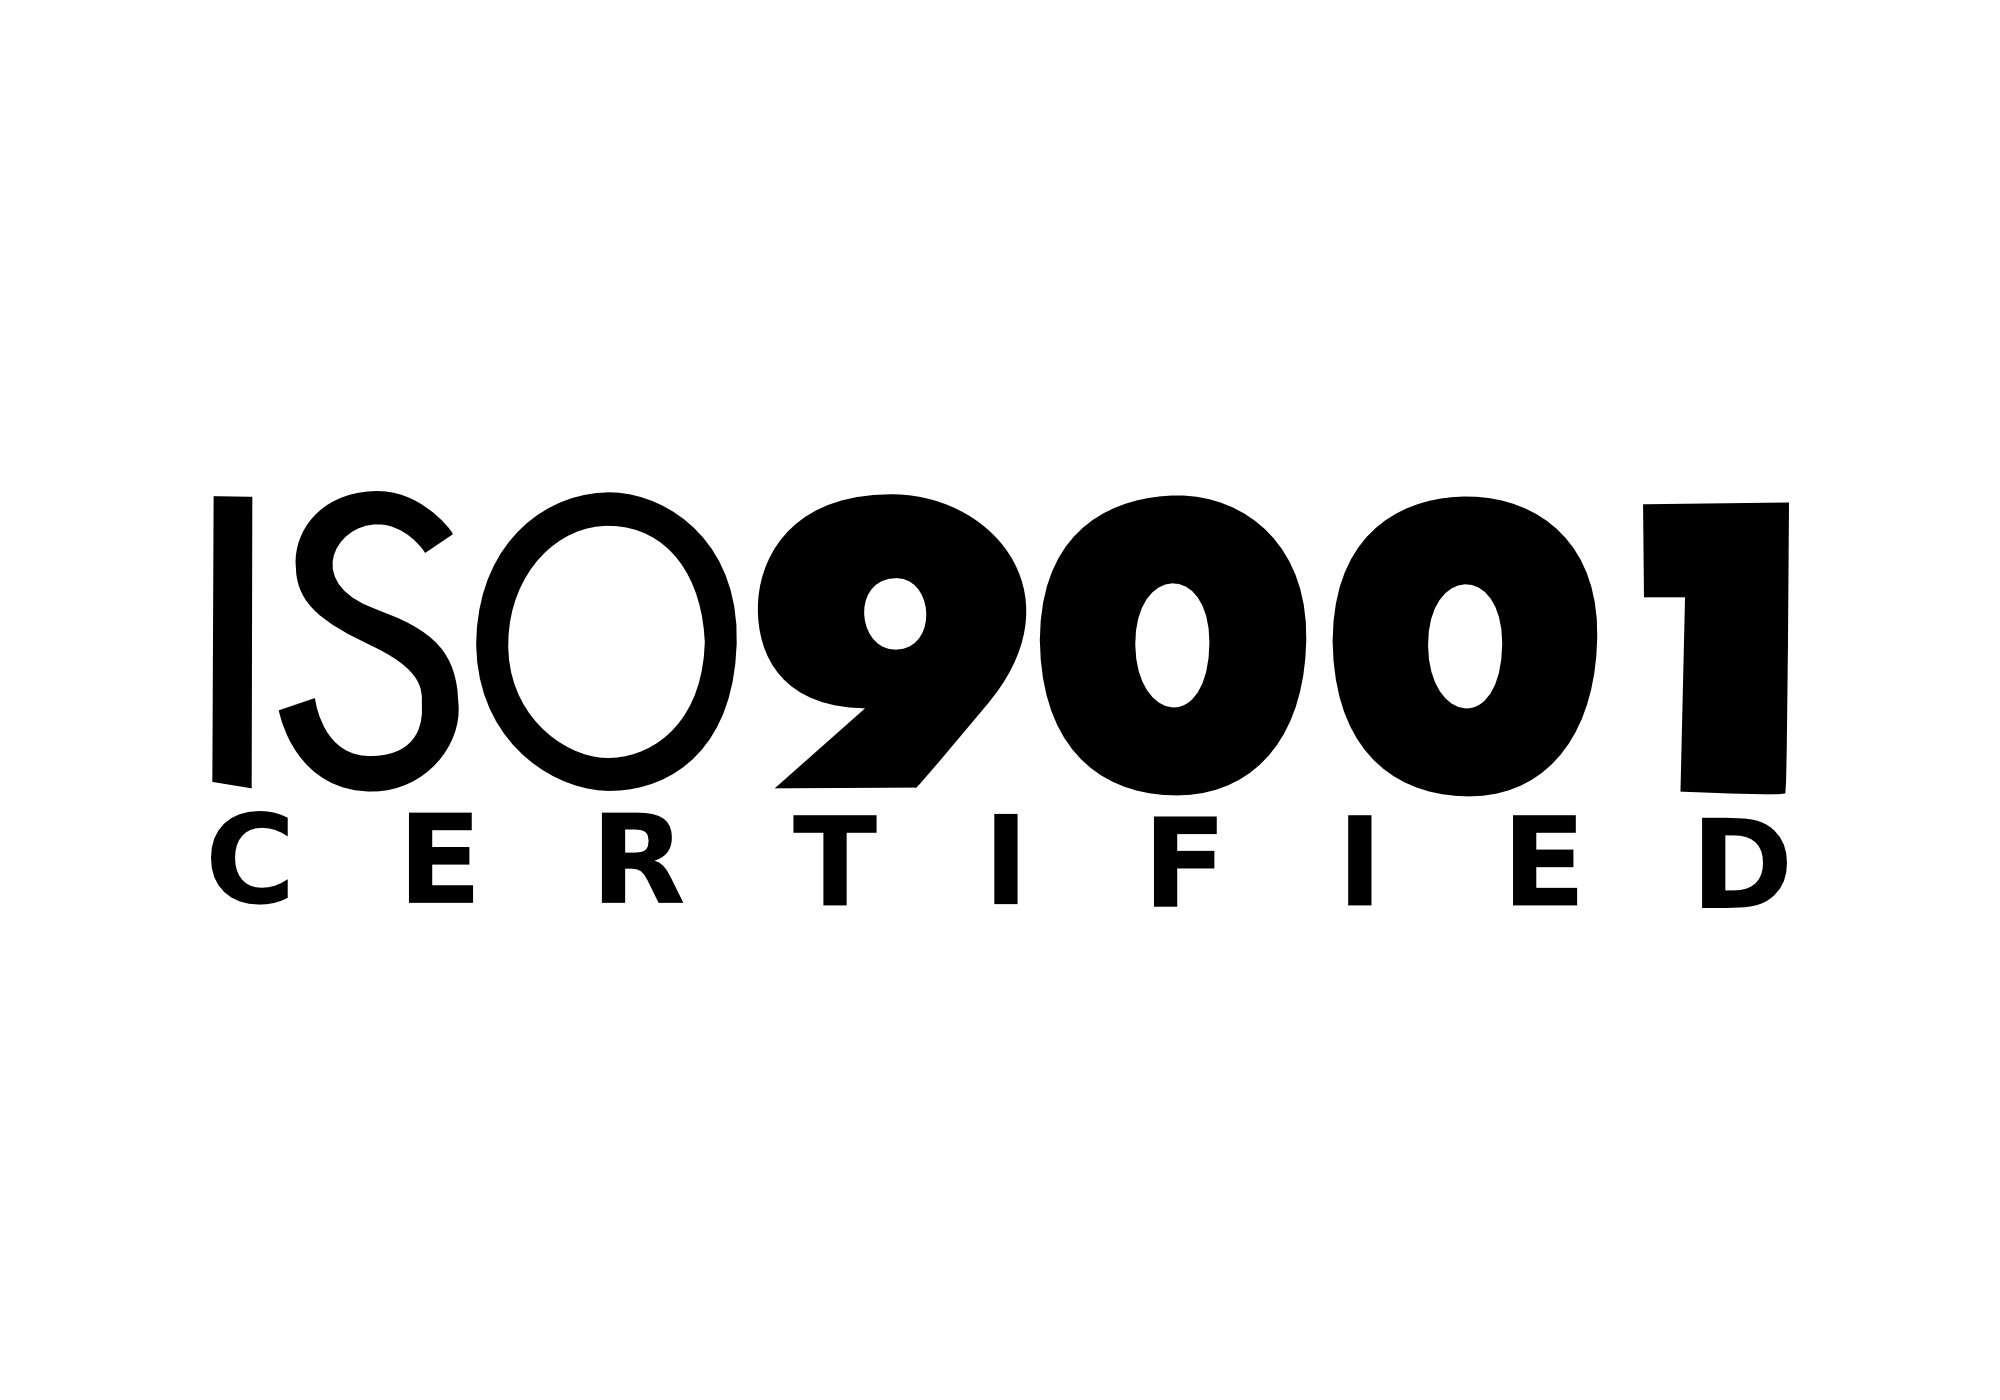 How To Get An Iso 9001 Certification In Dubai